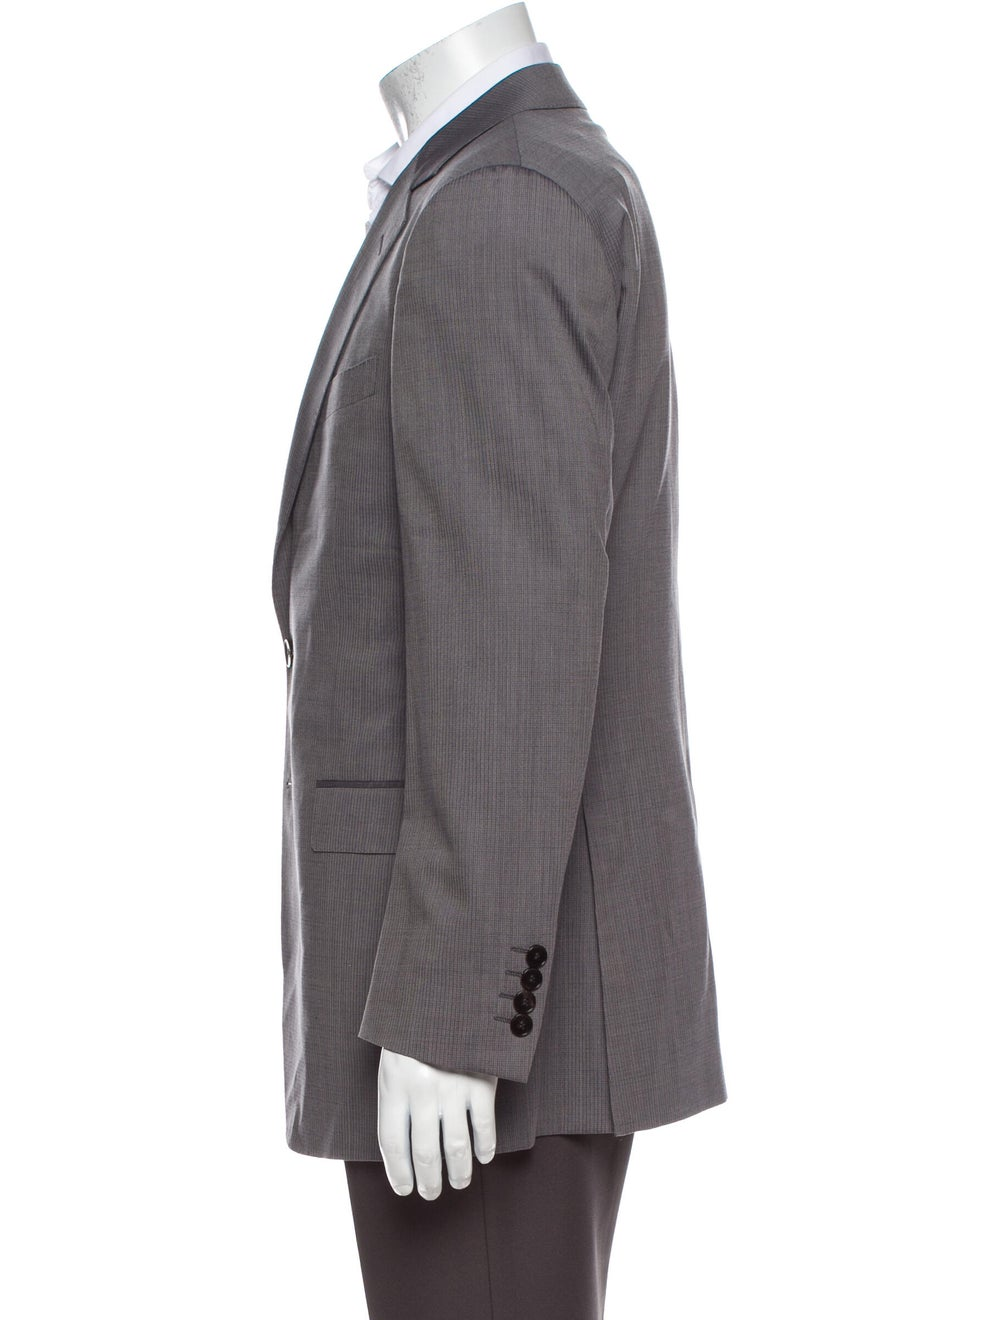 Gucci Wool Two-Piece Suit Wool - image 2